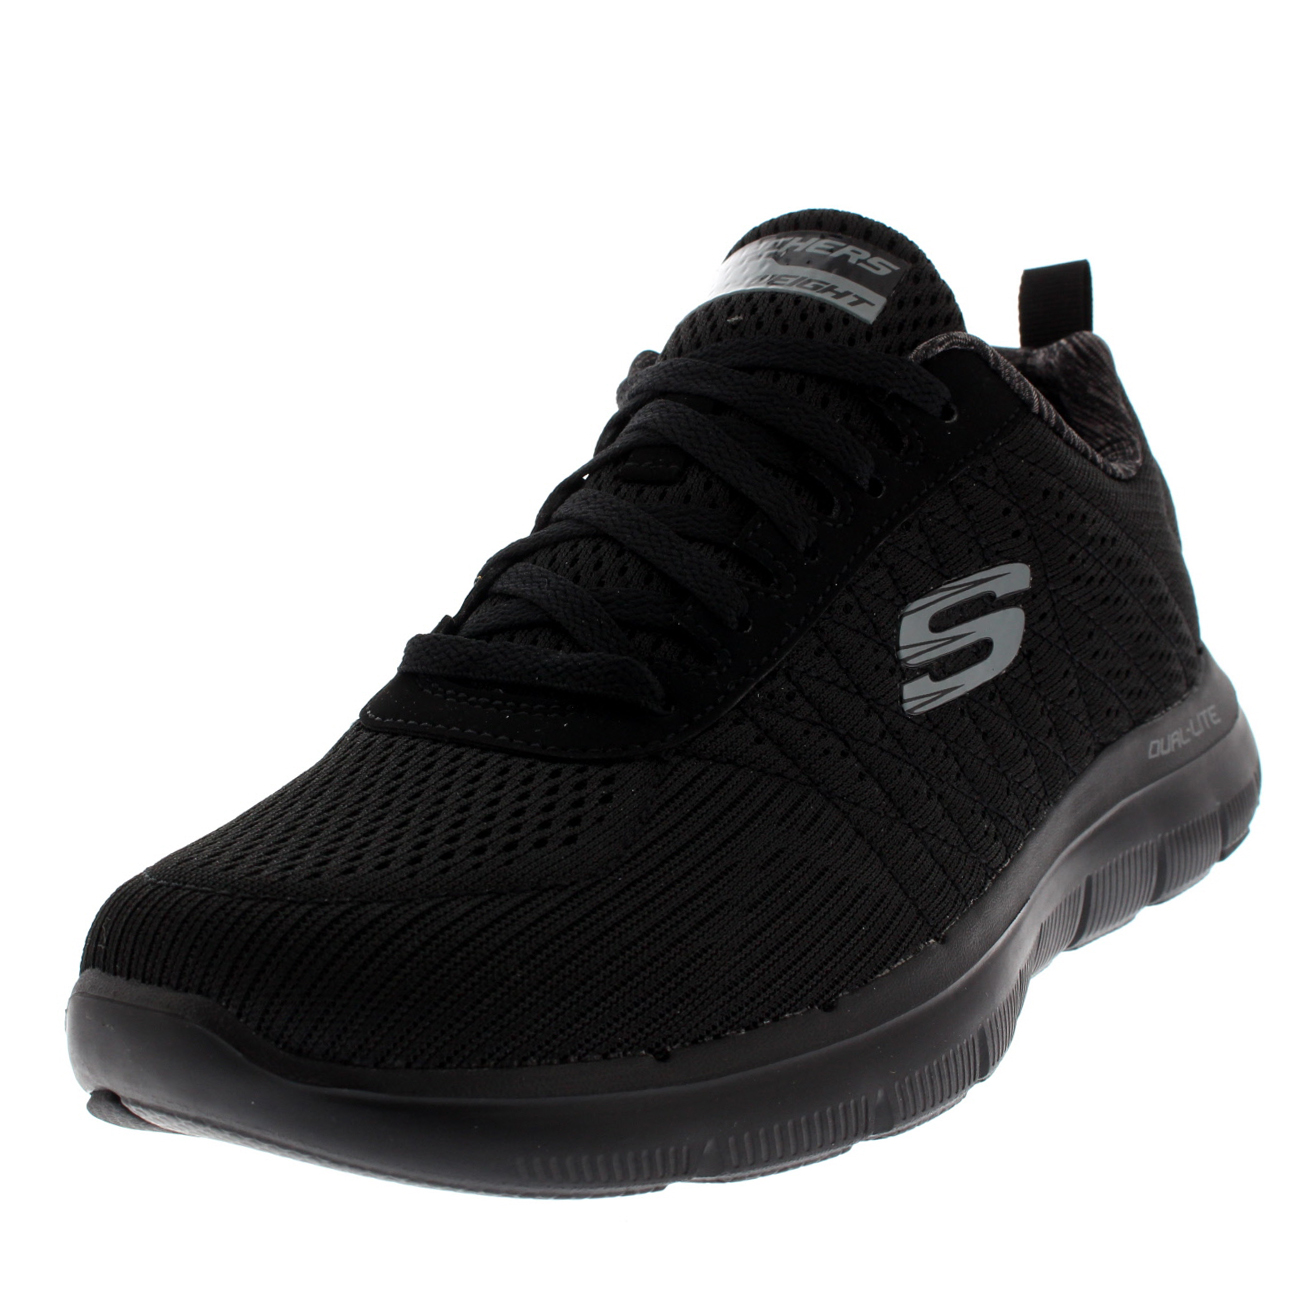 skechers air cooled memory foam mens uk